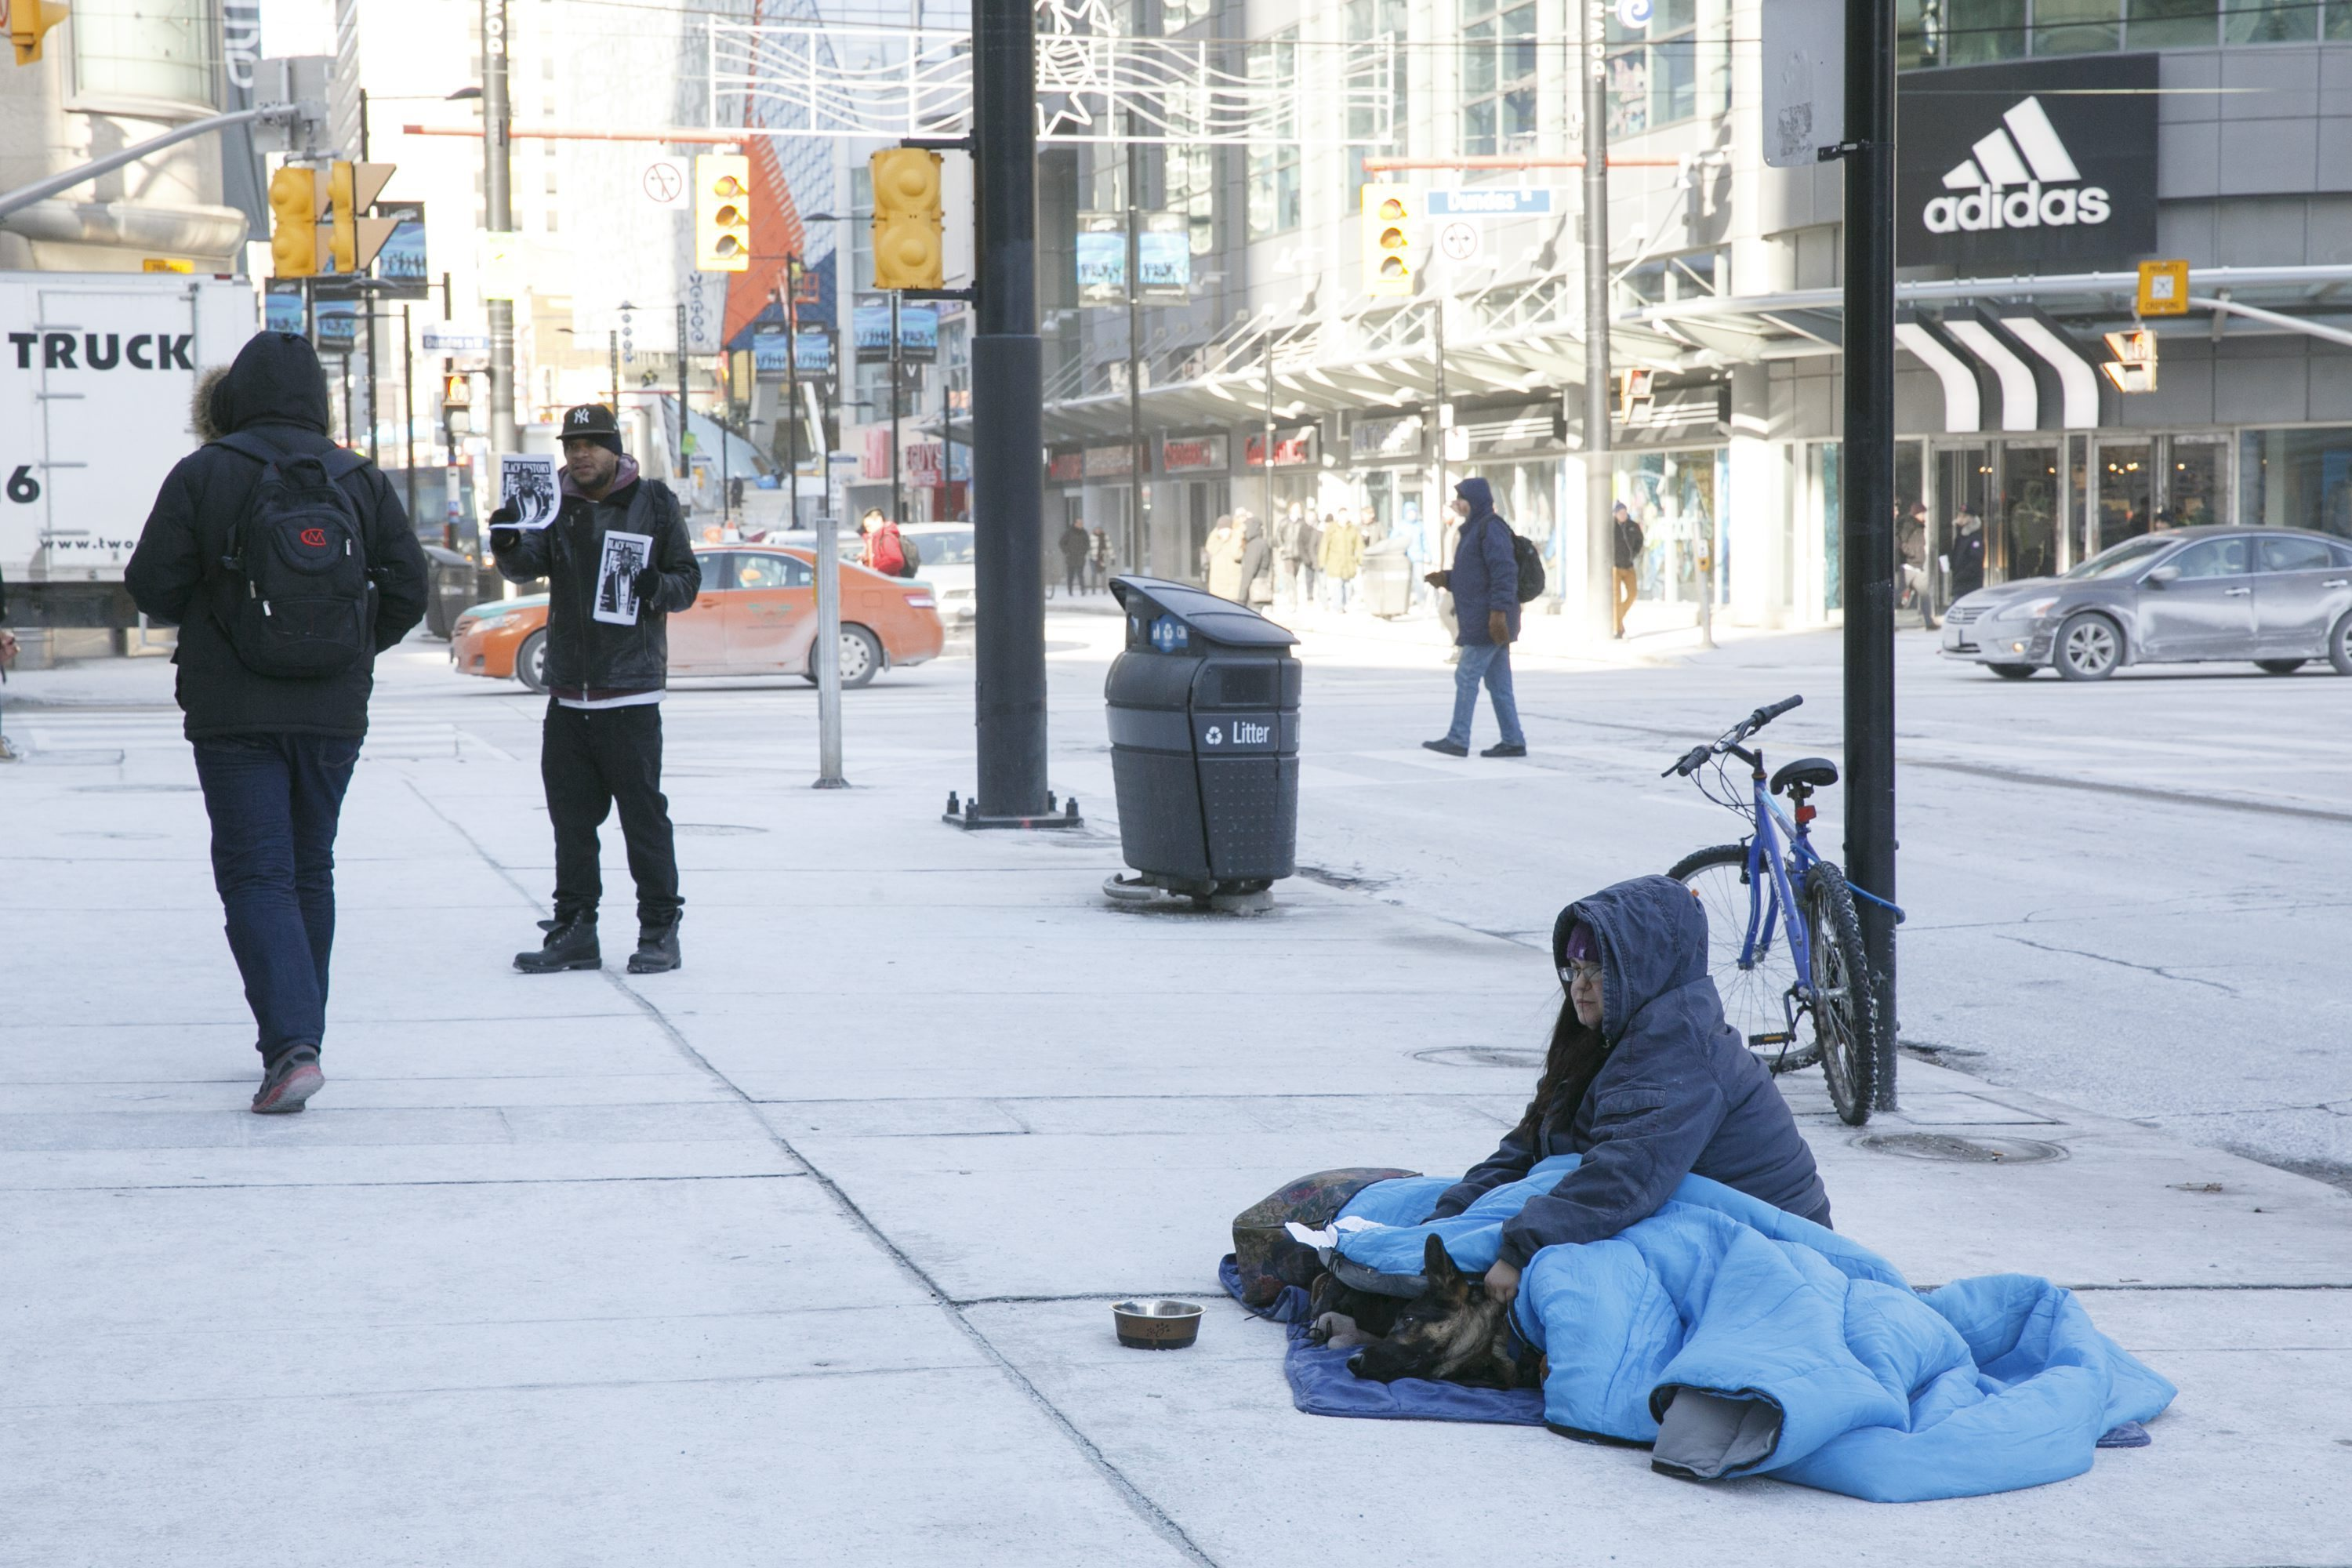 homelessness evident in the wealthy city of toronto Why does homelessness persist in rich liberal programs for the homeless cost the city of toronto spent $30,000 stream of relatively wealthy people to.